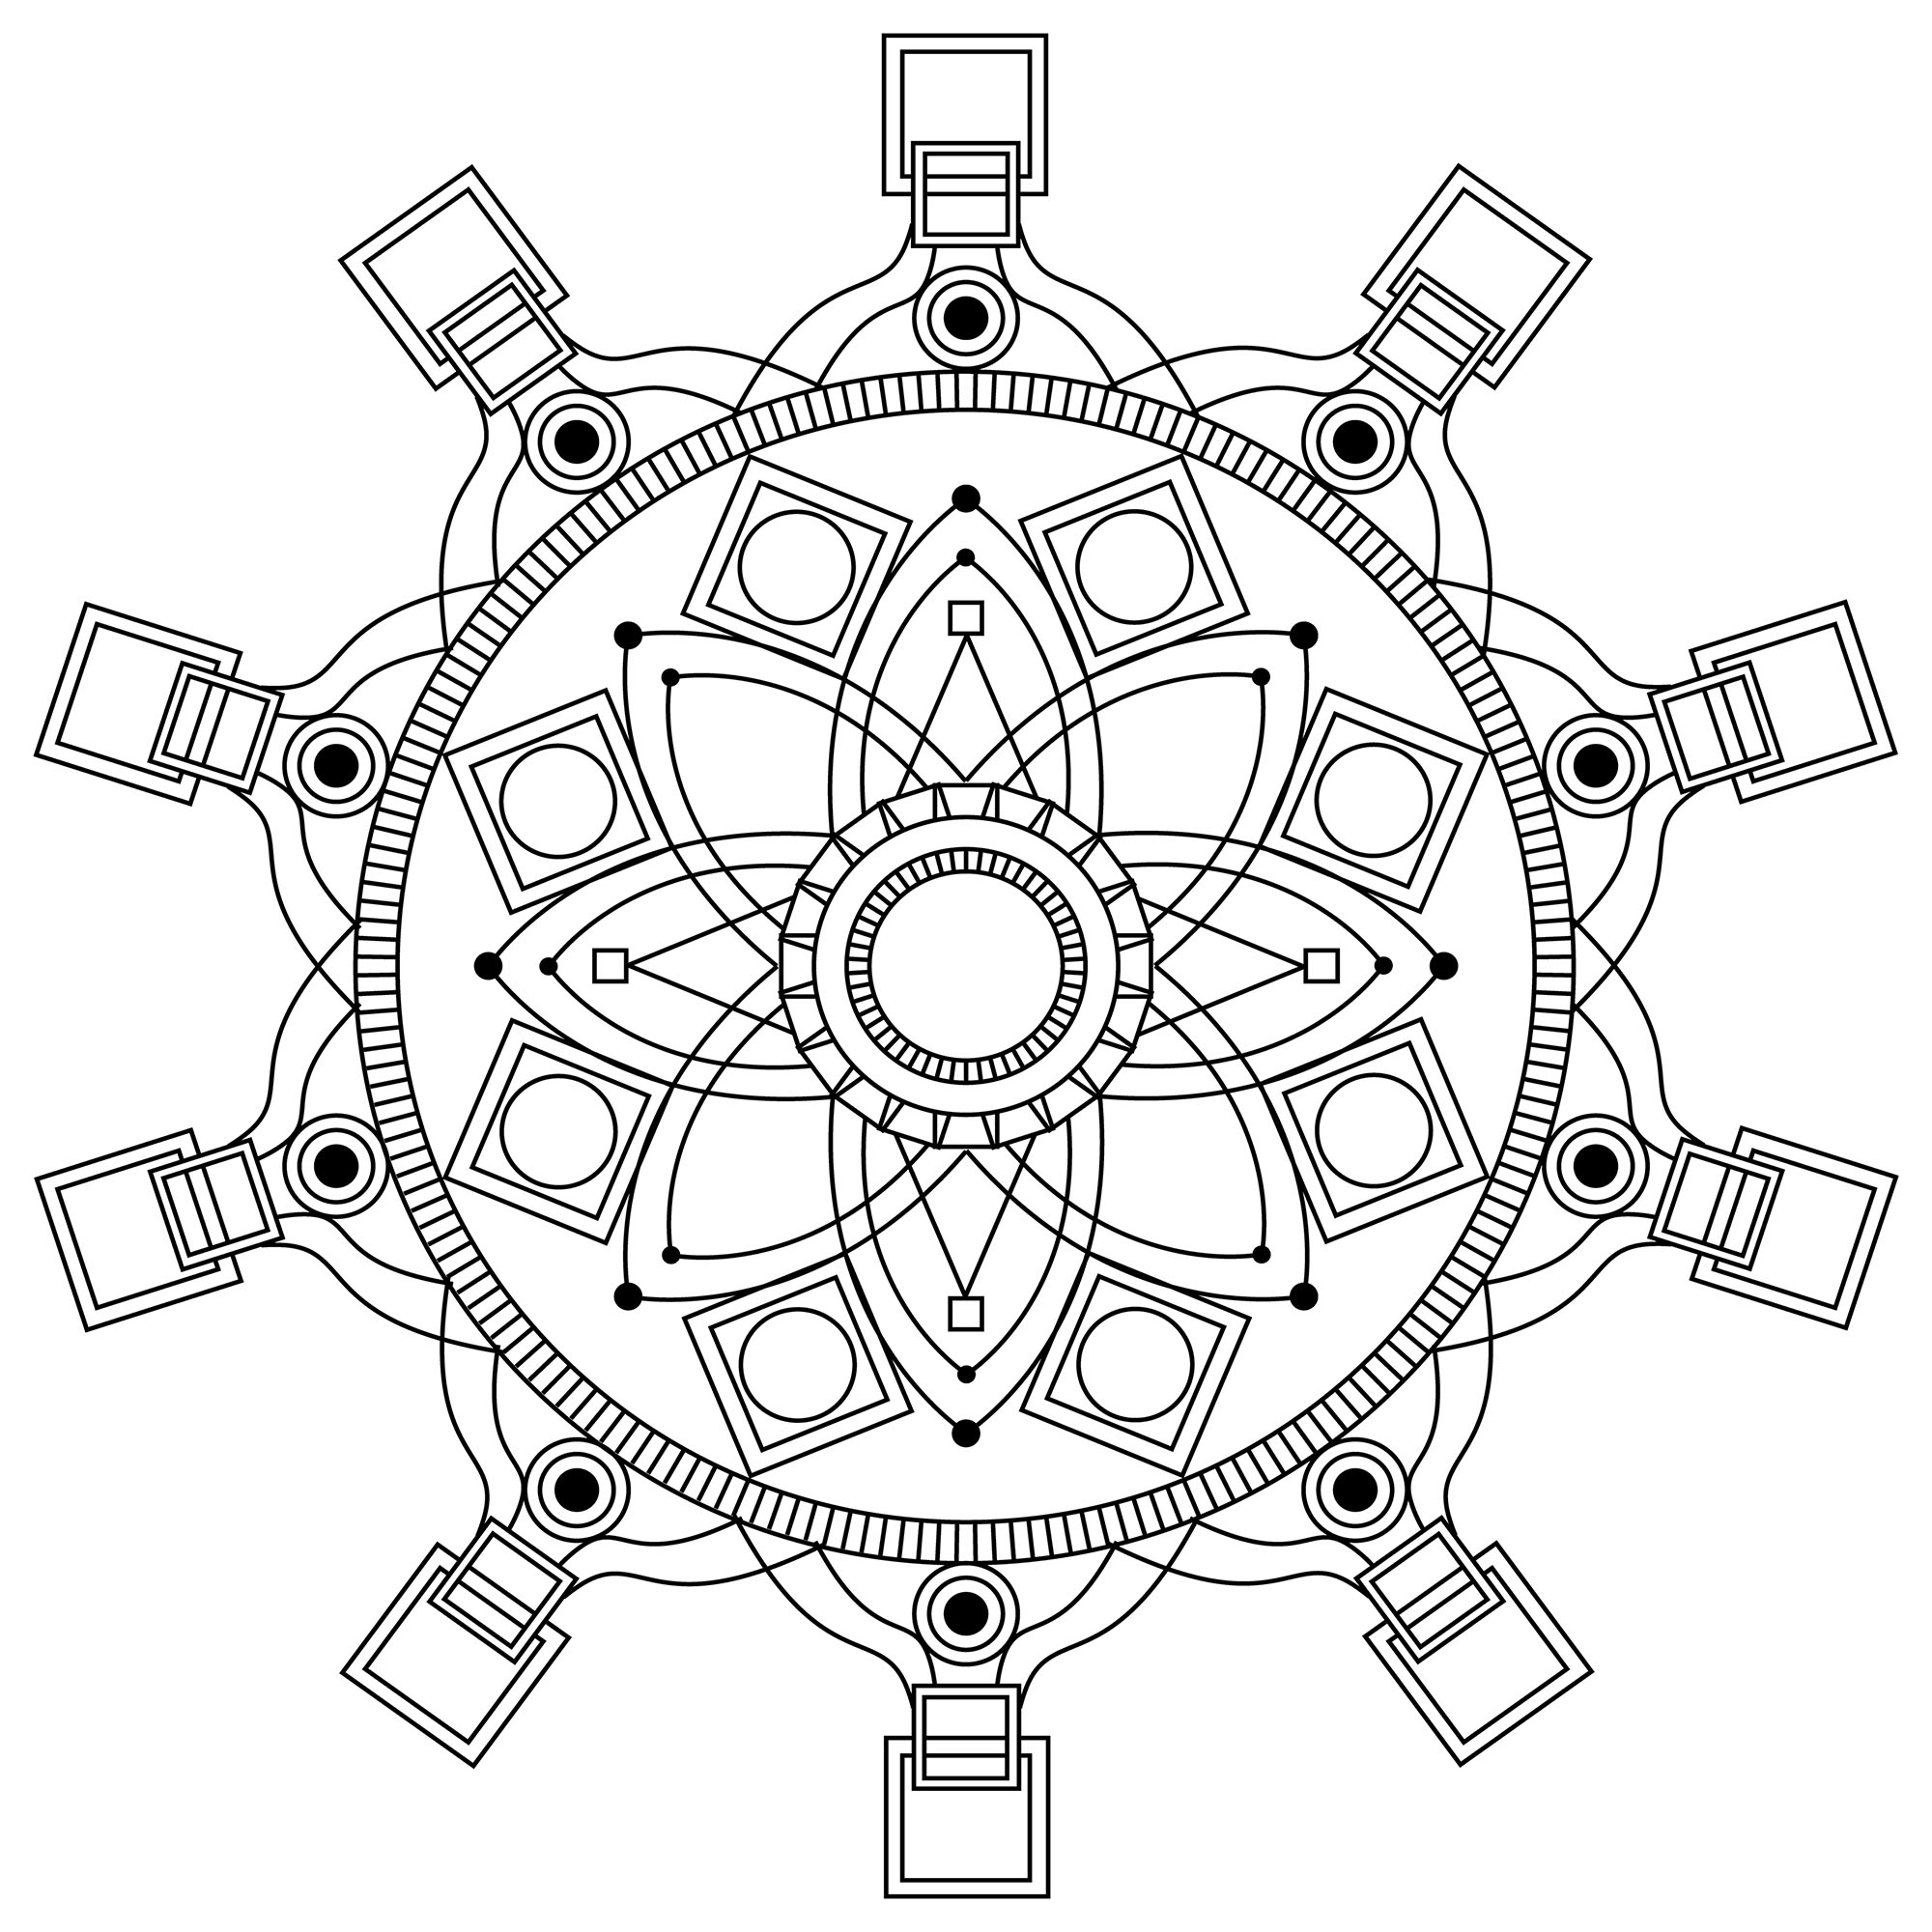 When coloring can really relax you ... This is the case with this Mandala coloring page of high quality. Mandalas offer balancing visual elements, symbolizing unity and harmony.